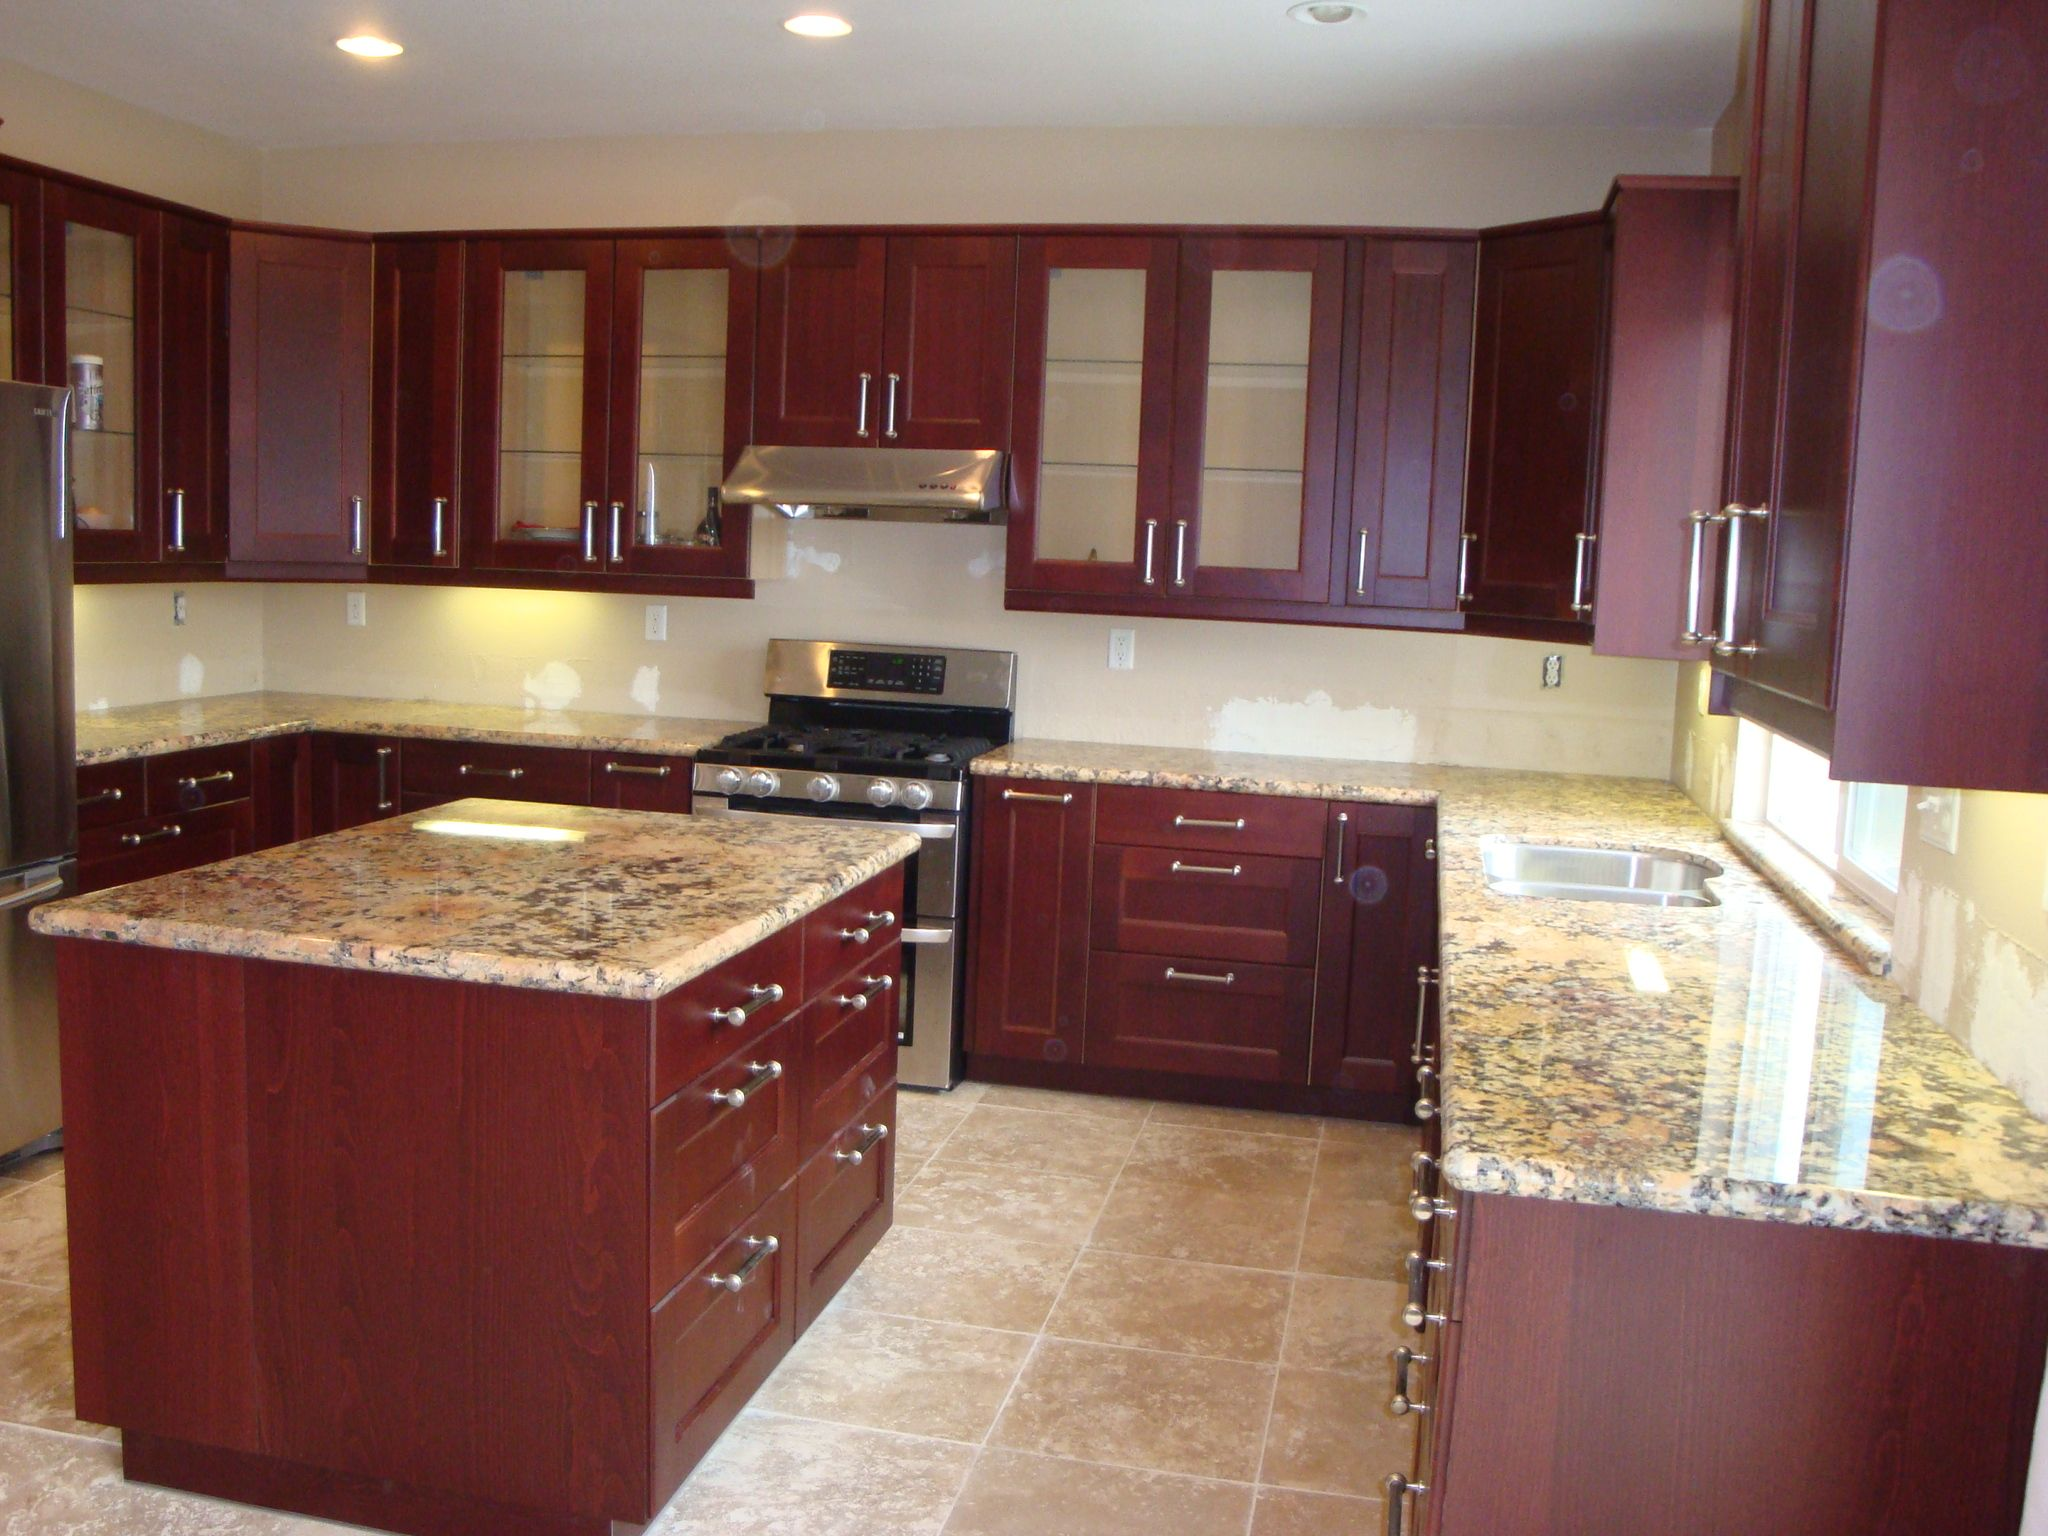 Http Www Paramountcountryclub Com Types Of Kitchen Cabinets Kitchen Remodel Shaker Style Kitchen Cabinets